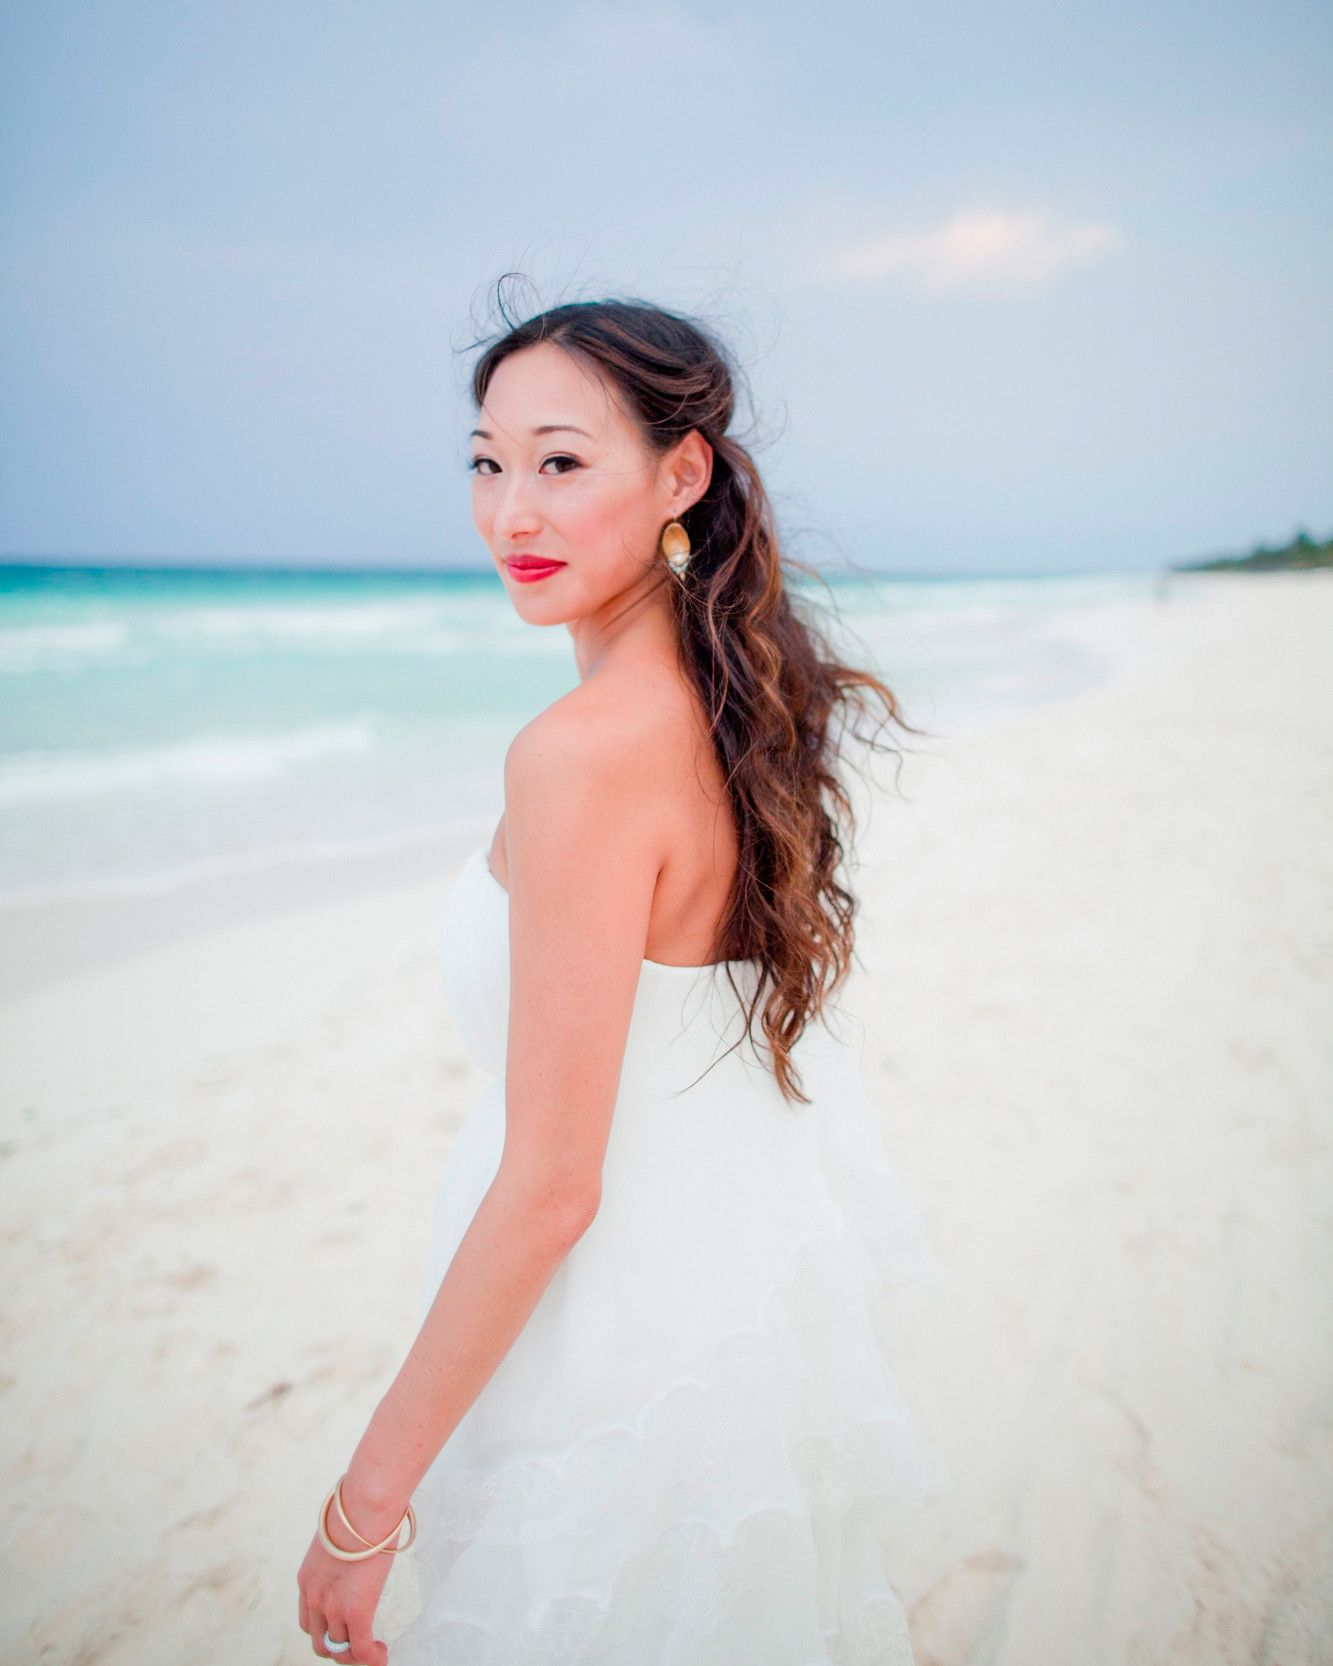 Relaxed beach wedding  Bright lipstick is one of Oliviaus everyday style signatures While